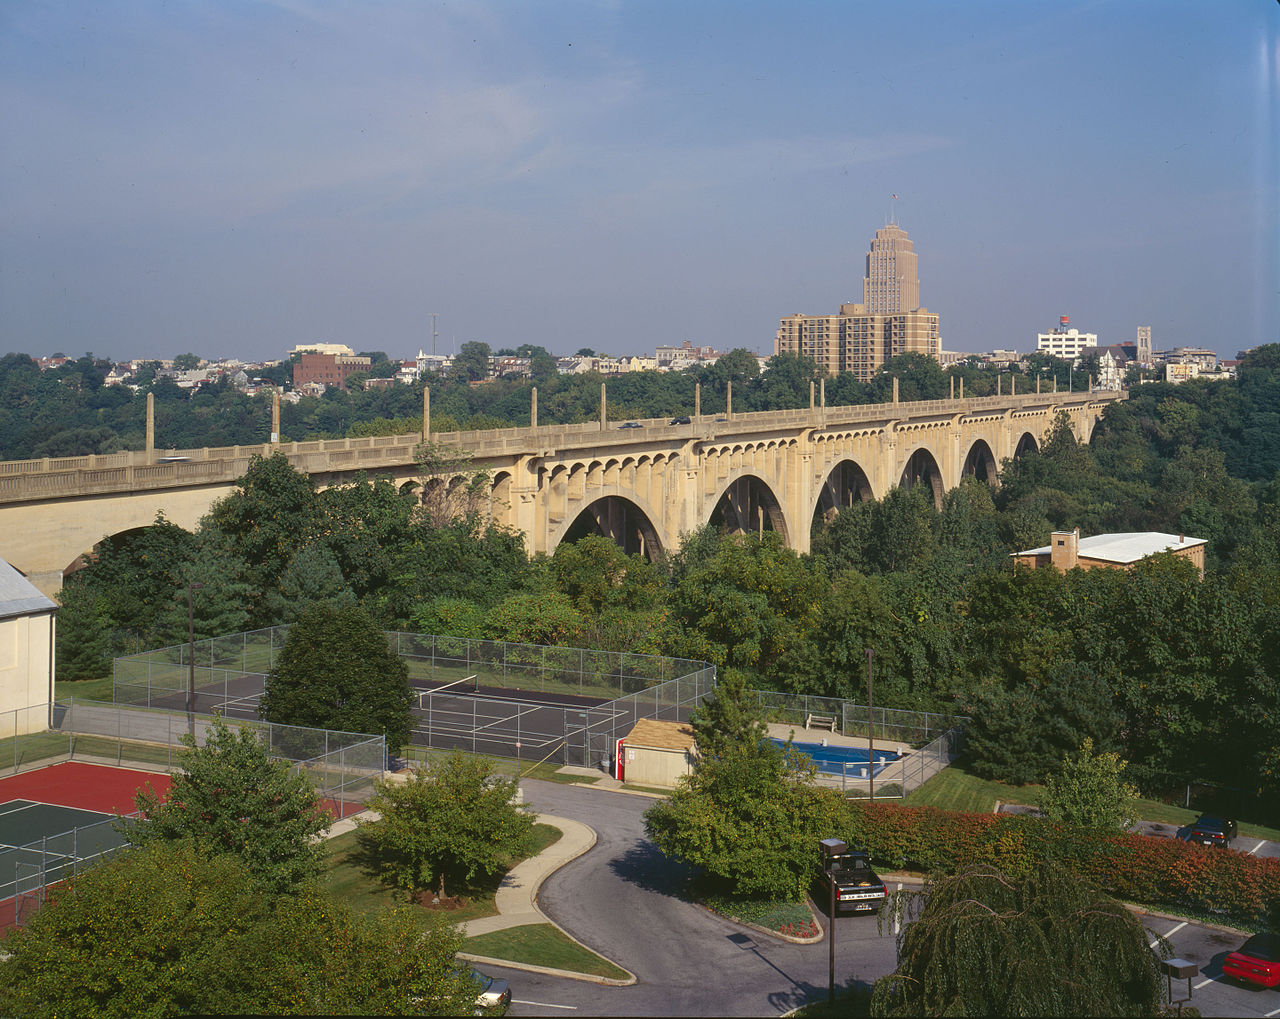 Built in 1913, the Albertus Meyers Bridge is still an impressive engineering feat today.